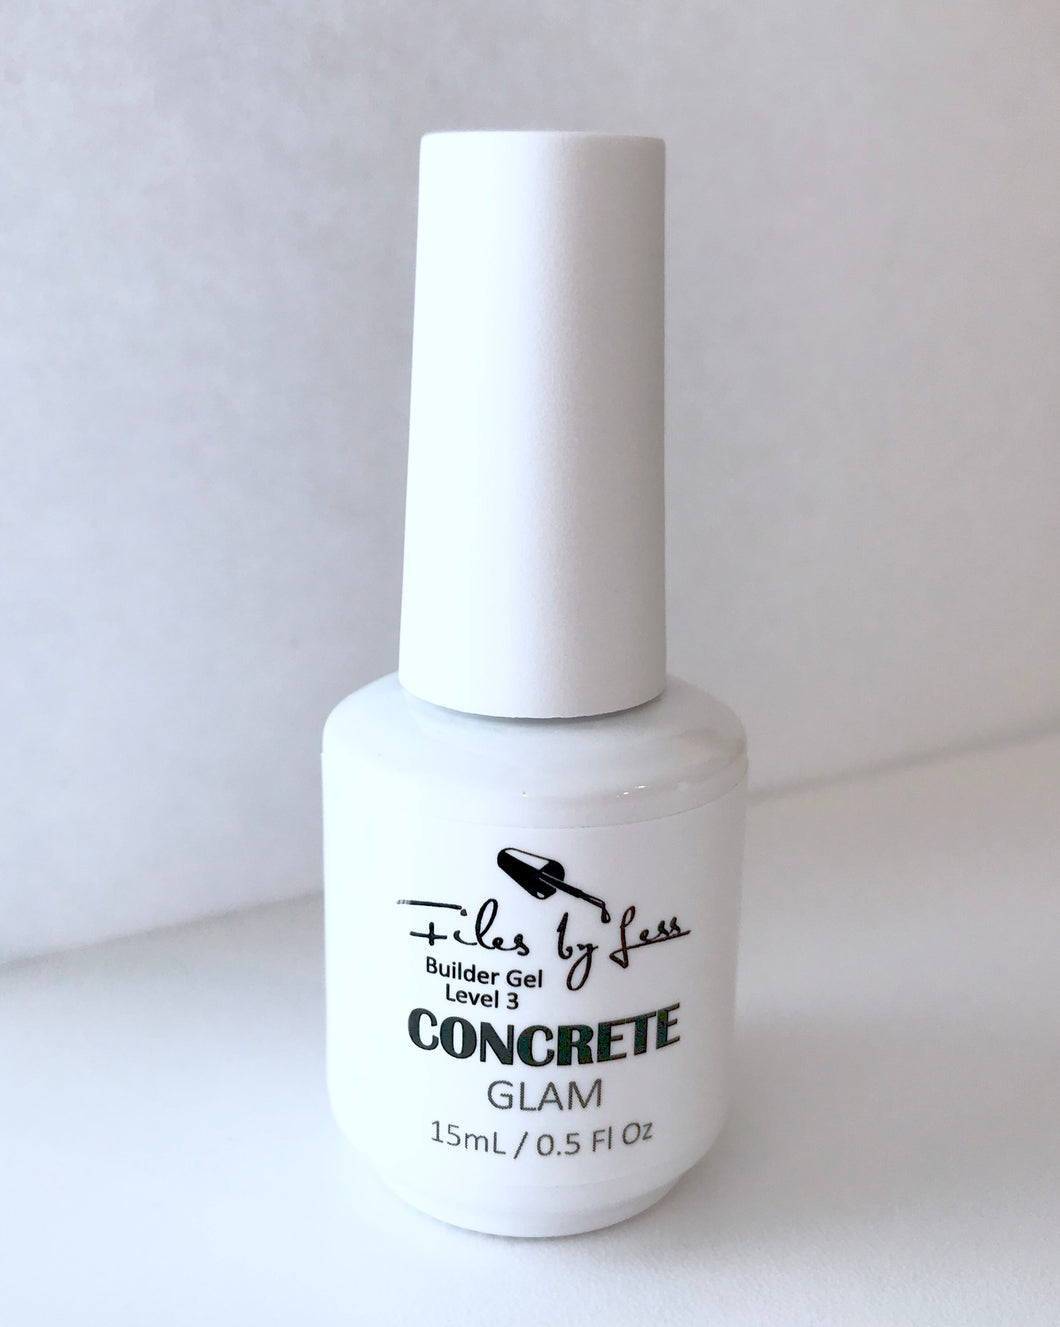 CONCRETE Builder Gel GLAM